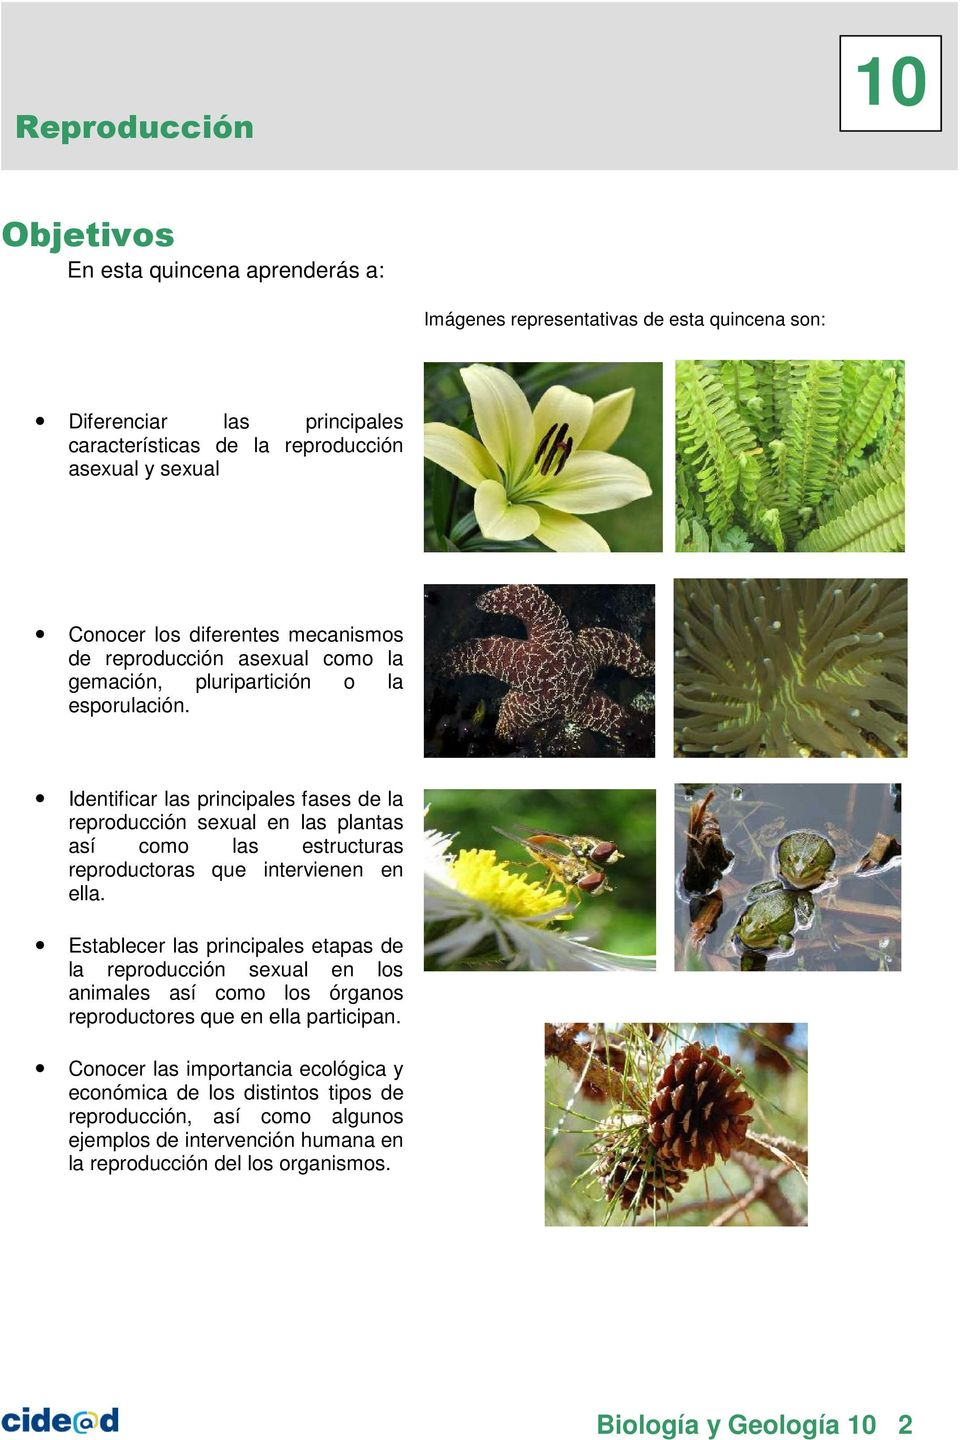 Reproduccion asexual de las plantas pdf to word